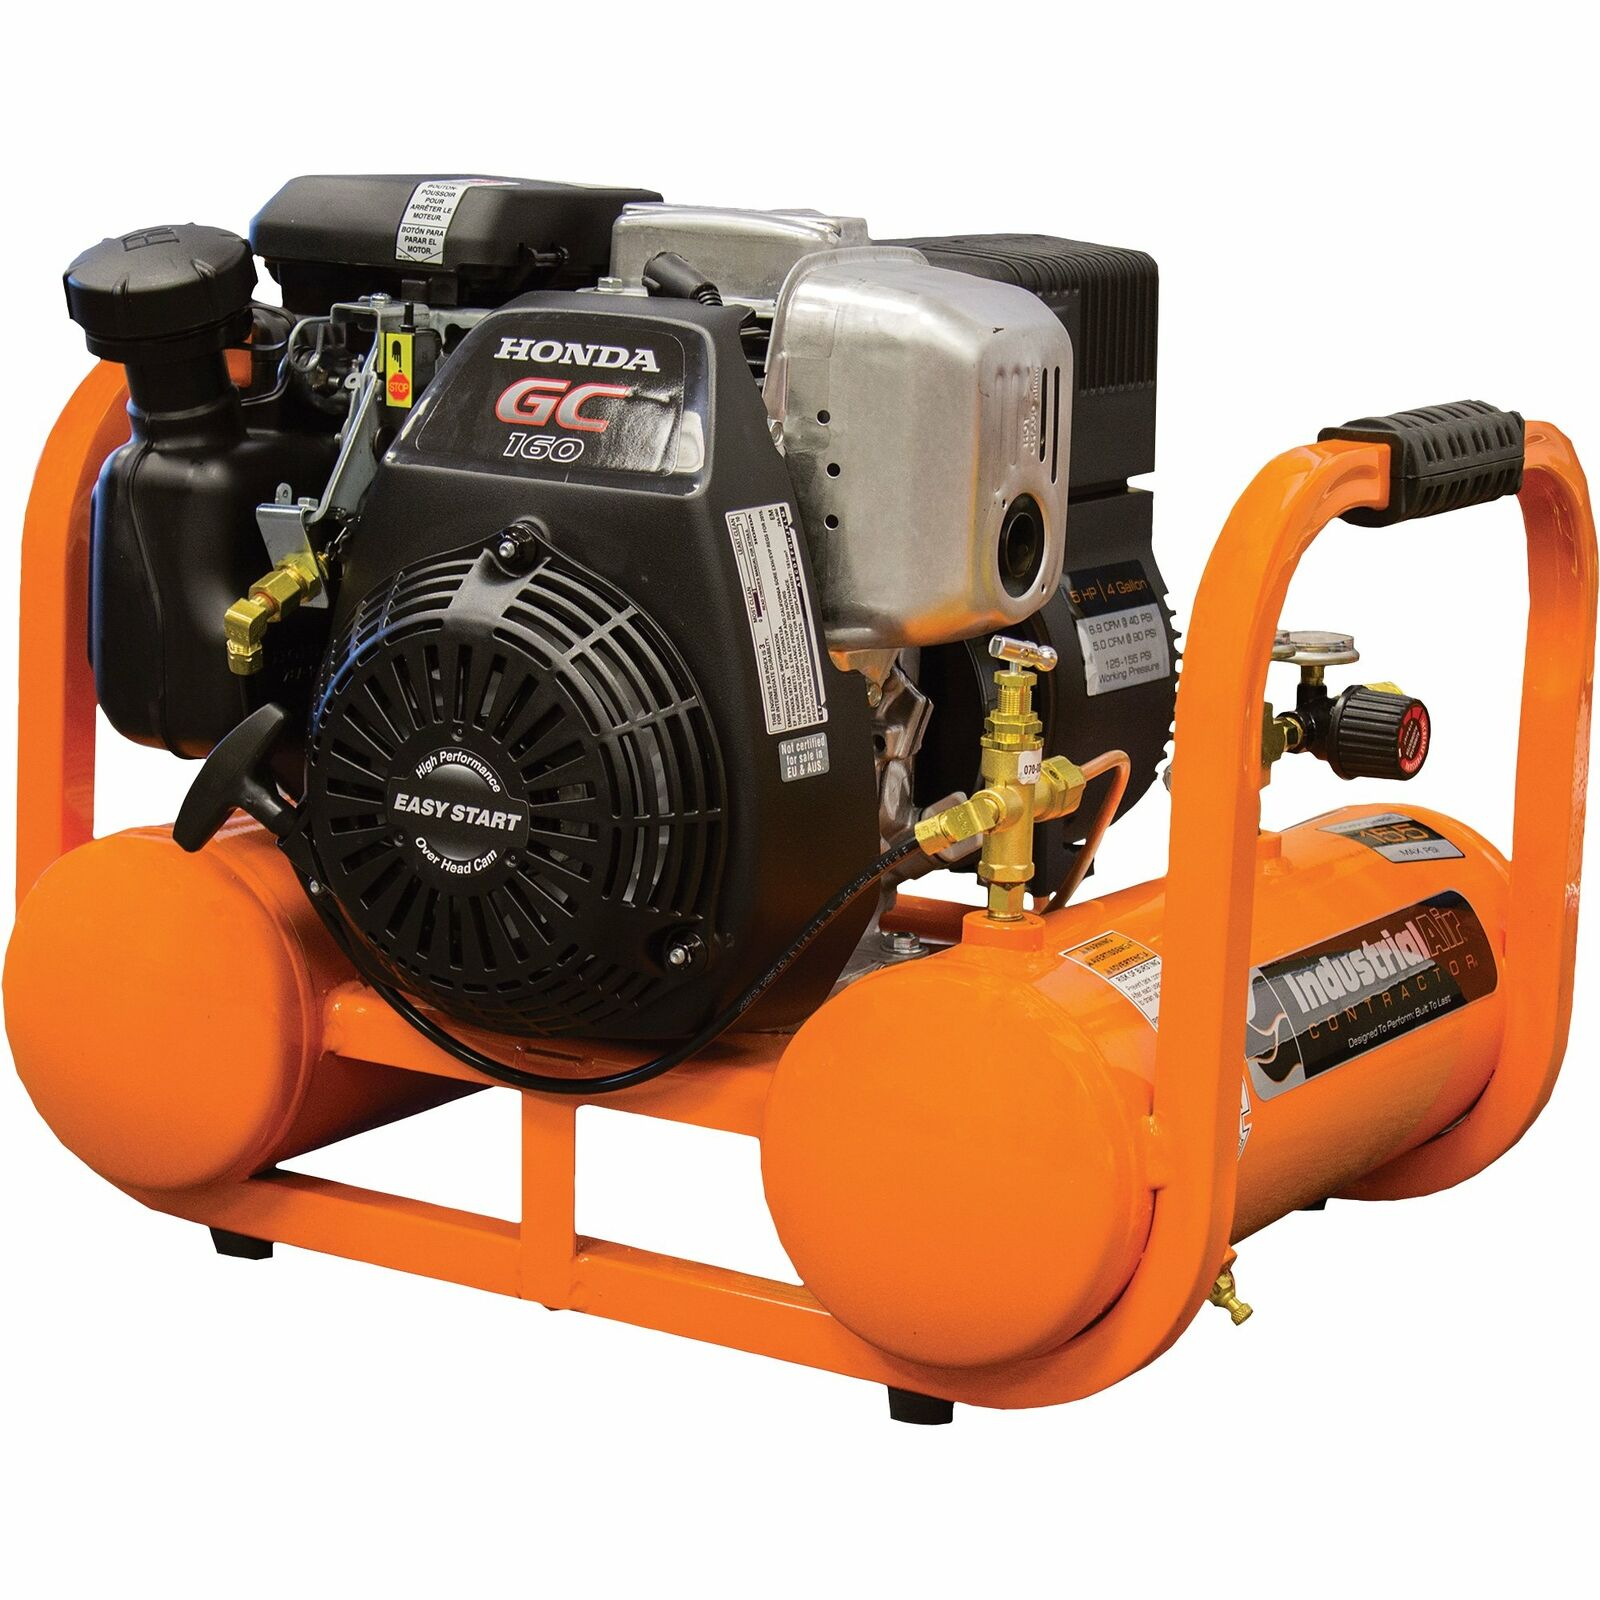 Industrial Air Contractor Pontoon Air Compressor w/Honda OHC Eng 4 Gal 155 PSI. Available Now for 619.99